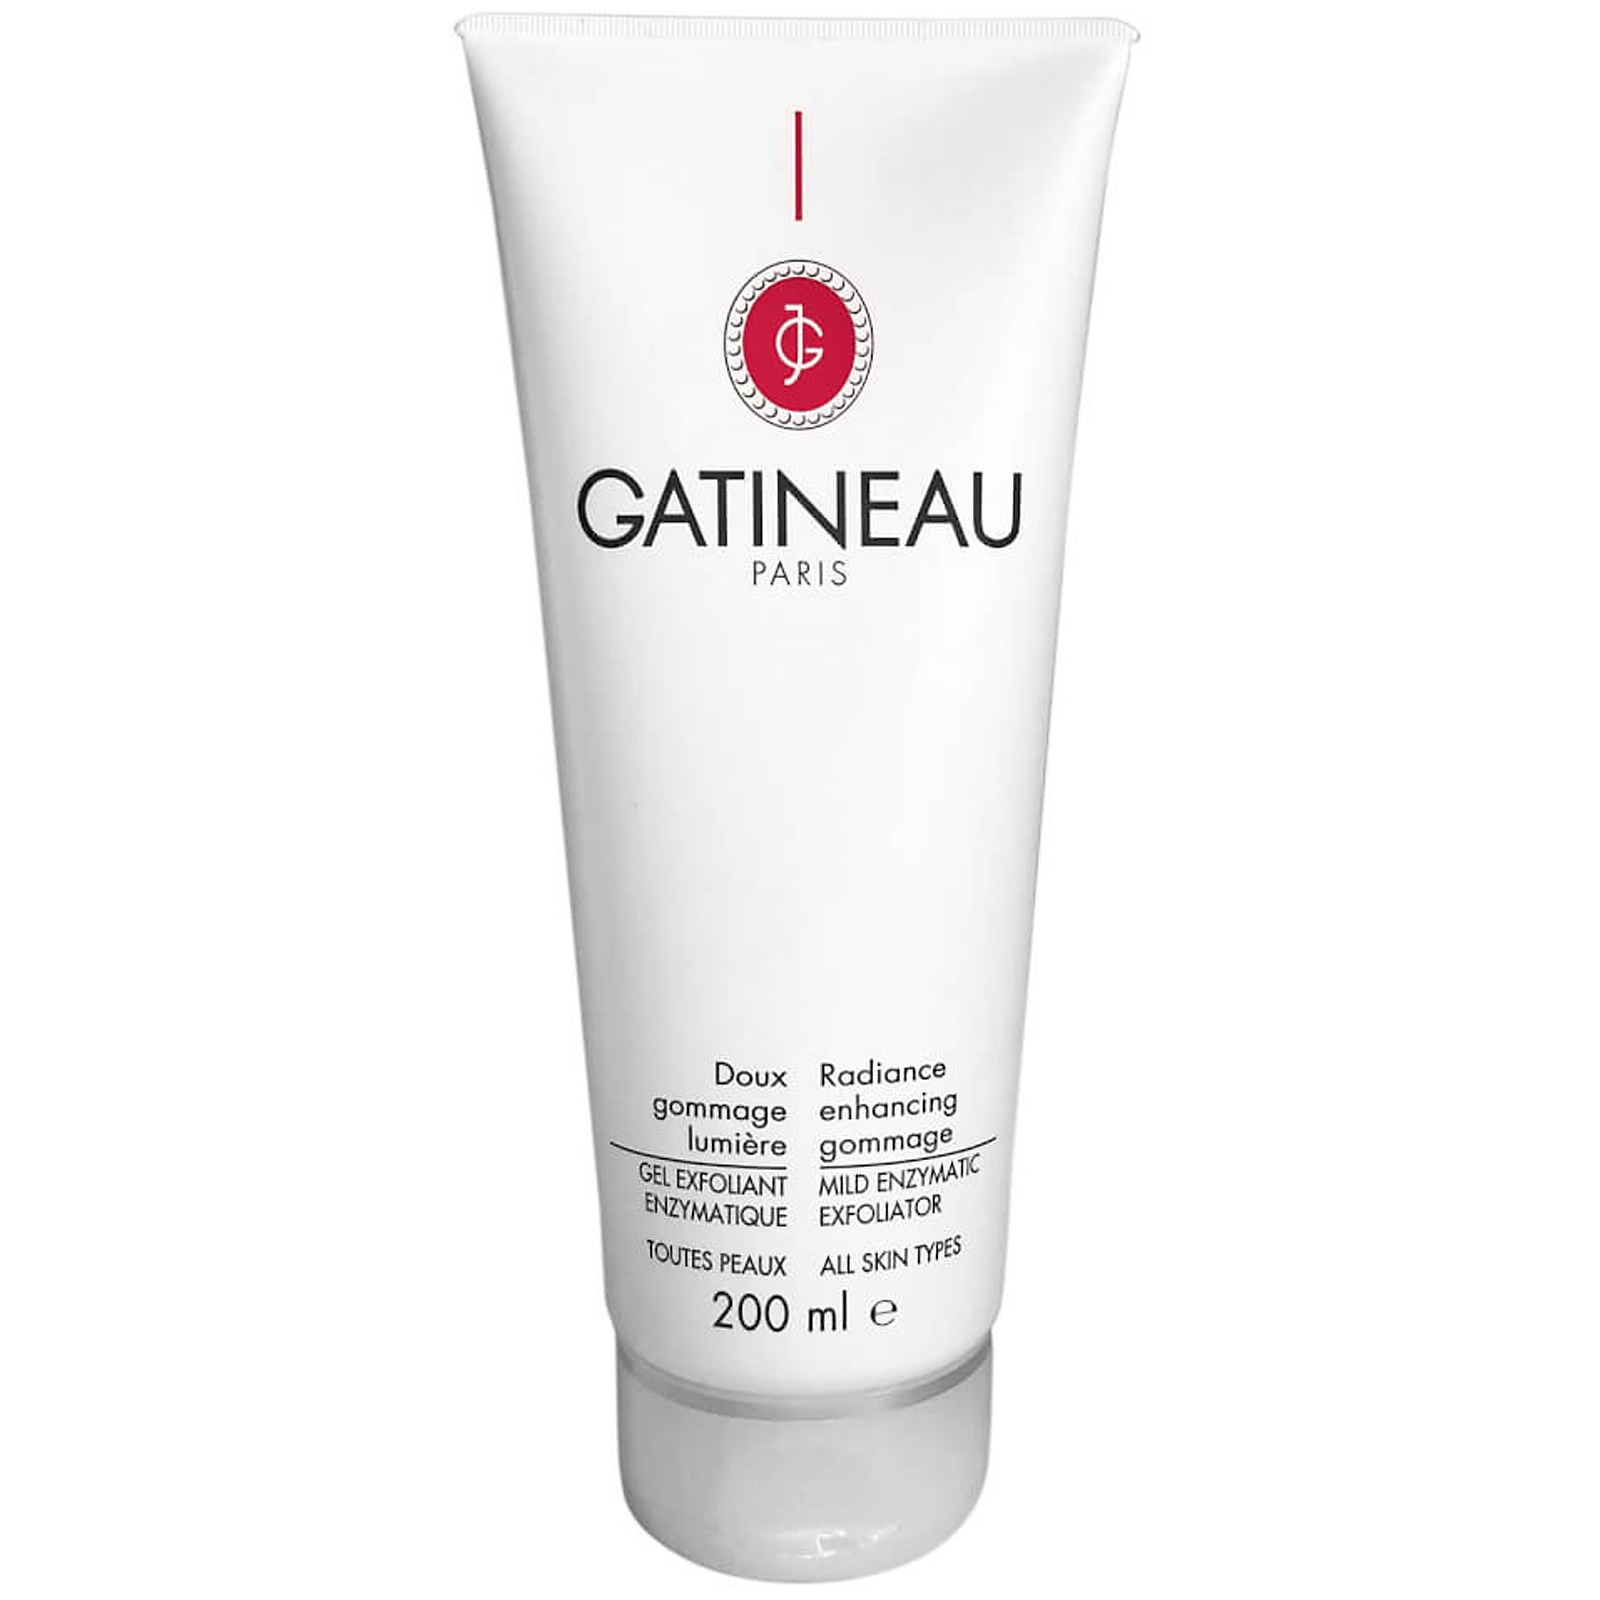 Gatineau Essentials Supersize Radiance Enhancing Gommage: Mild Enzymatic Exfoliator 200ml